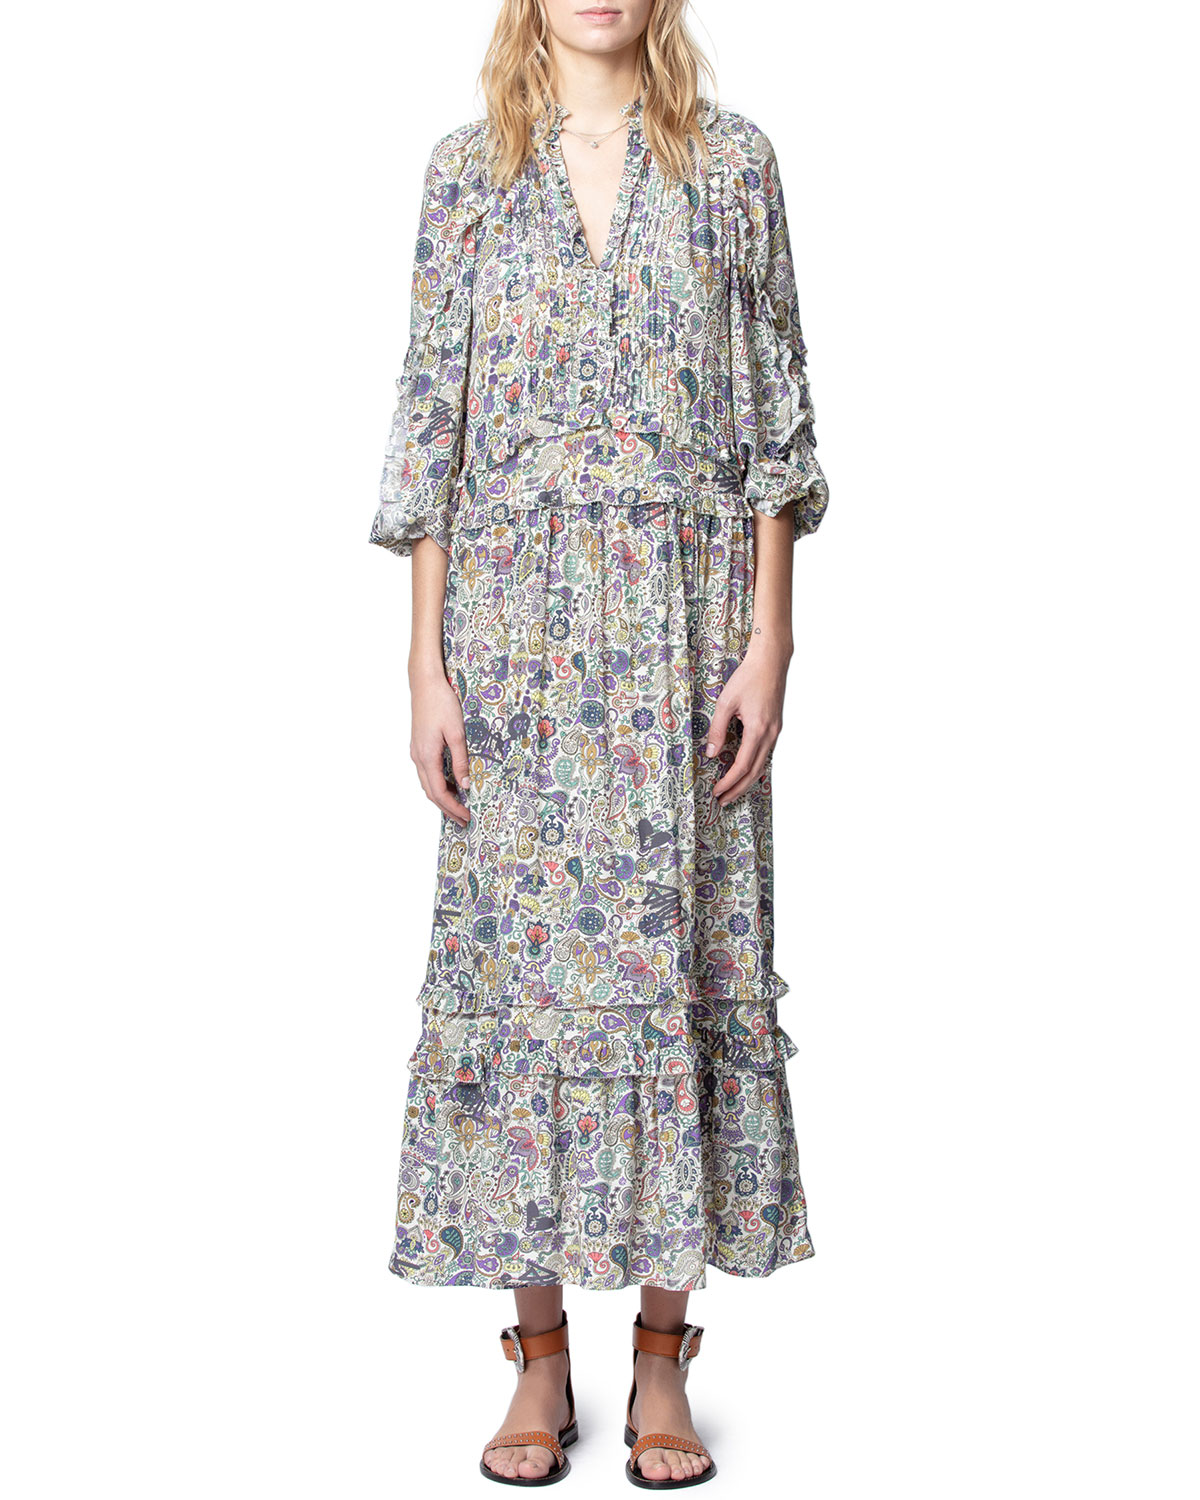 Zadig & Voltaire Realize Printed Maxi Dress